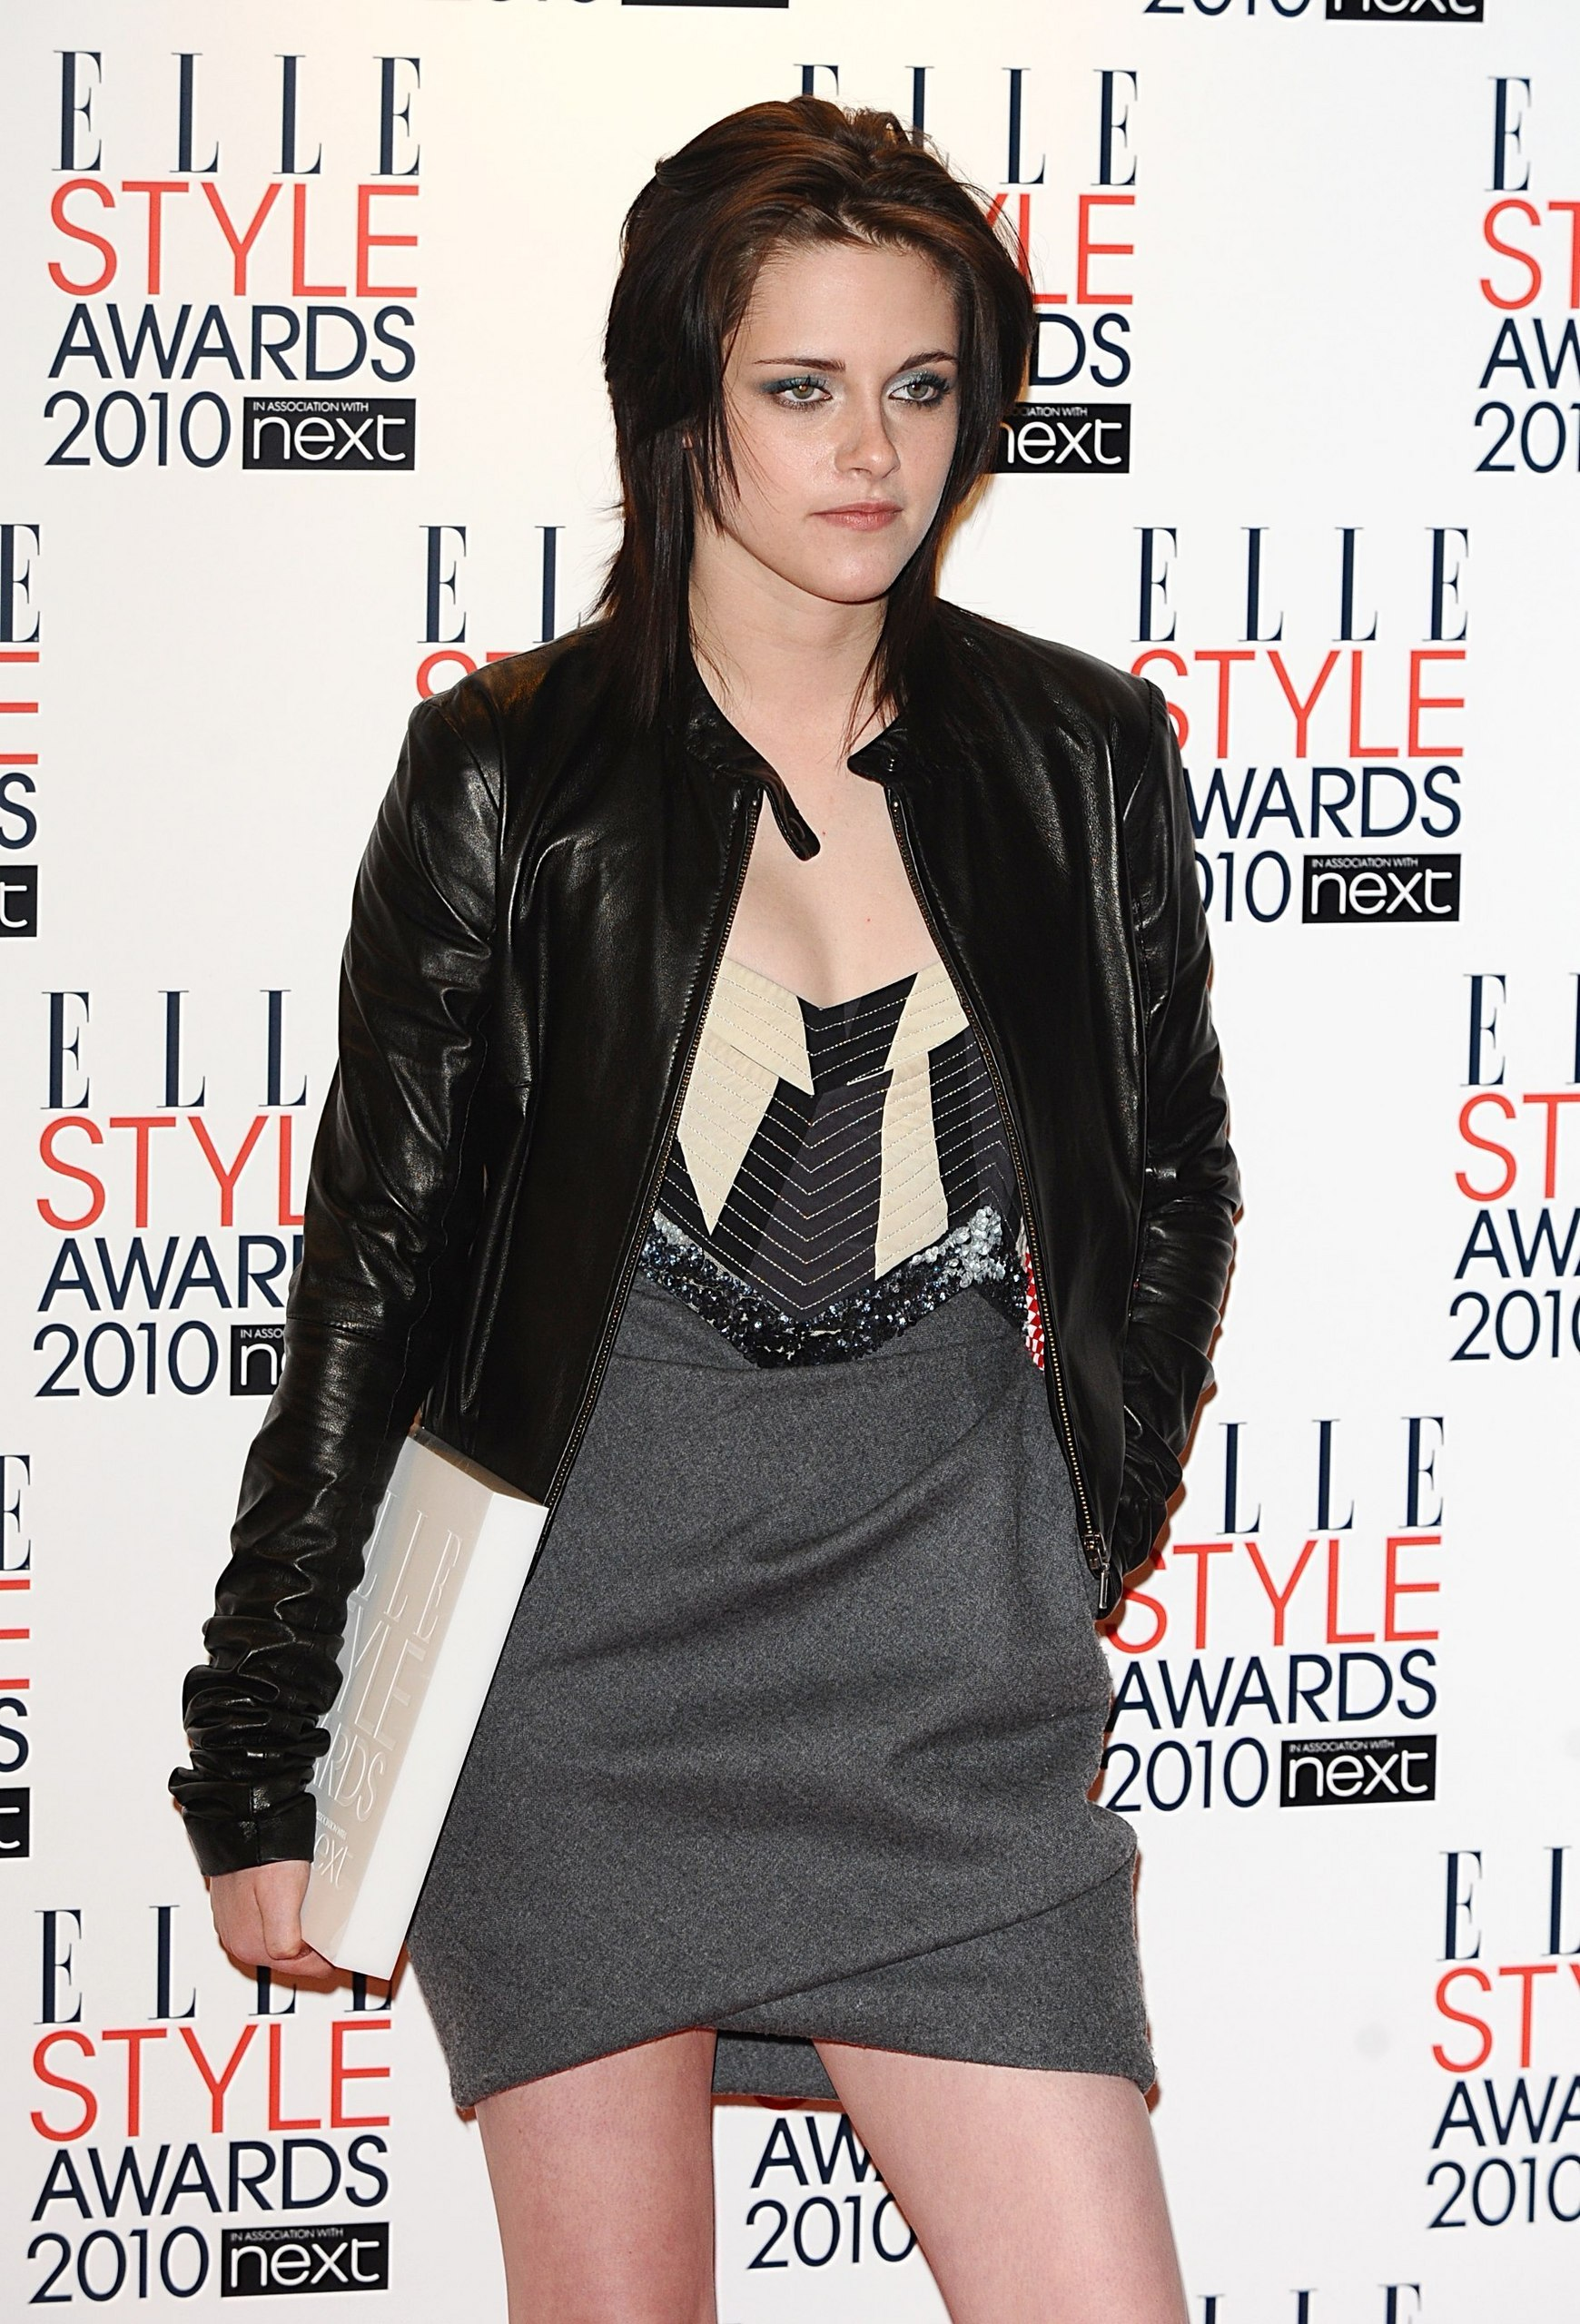 Kristen named Elle UK's Woman of the বছর